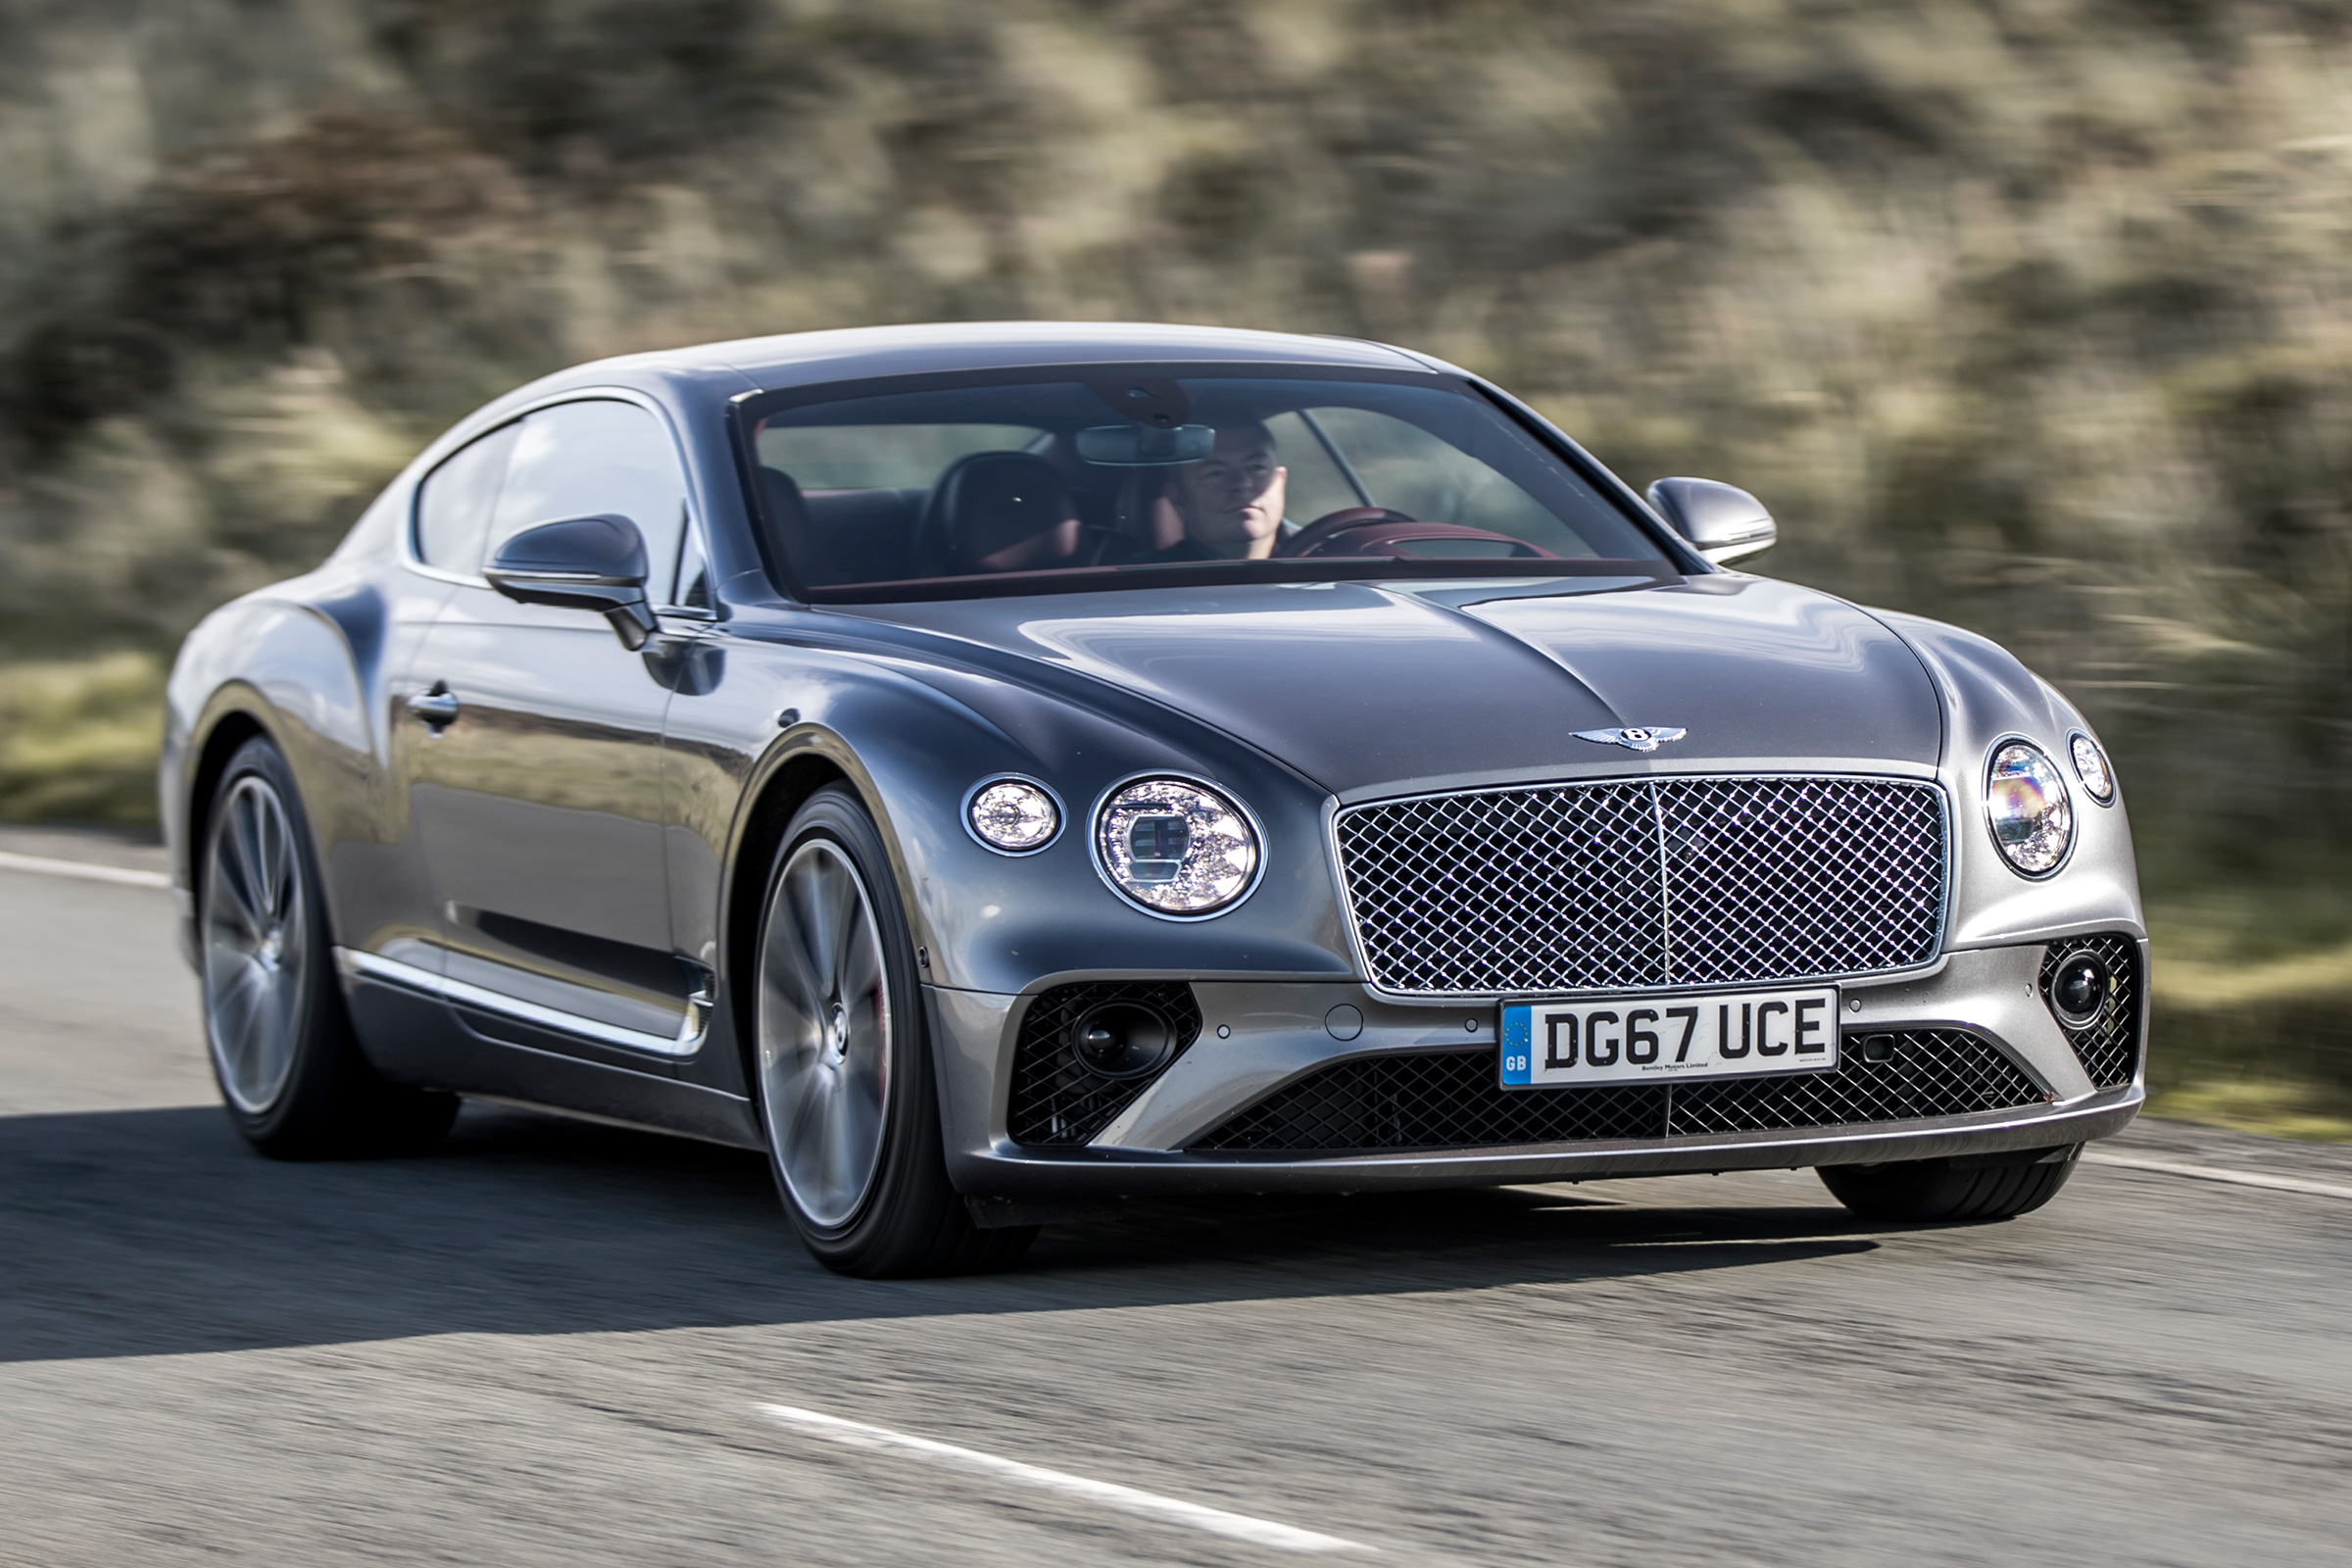 Bentley Continental Gt Mpg Co2 Emissions Road Tax Insurance Groups Auto Express